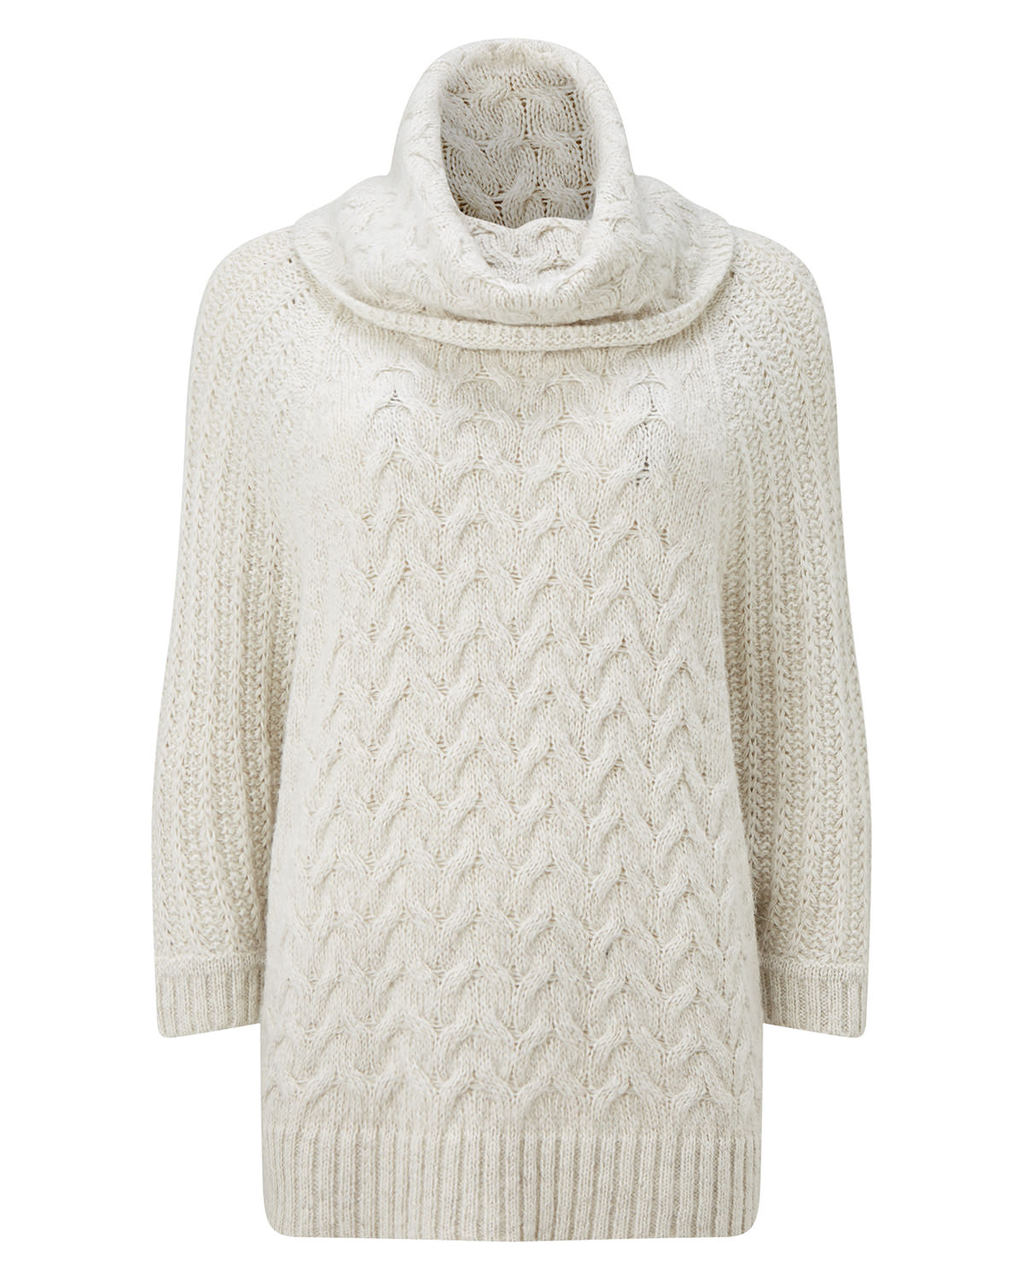 Marina Cable Batwing Knit - sleeve style: dolman/batwing; neckline: wide roll/funnel neck; length: below the bottom; style: standard; pattern: cable knit; predominant colour: ivory/cream; occasions: casual, creative work; fibres: acrylic - mix; fit: loose; sleeve length: long sleeve; texture group: knits/crochet; pattern type: knitted - big stitch; pattern size: standard; season: a/w 2015; wardrobe: highlight